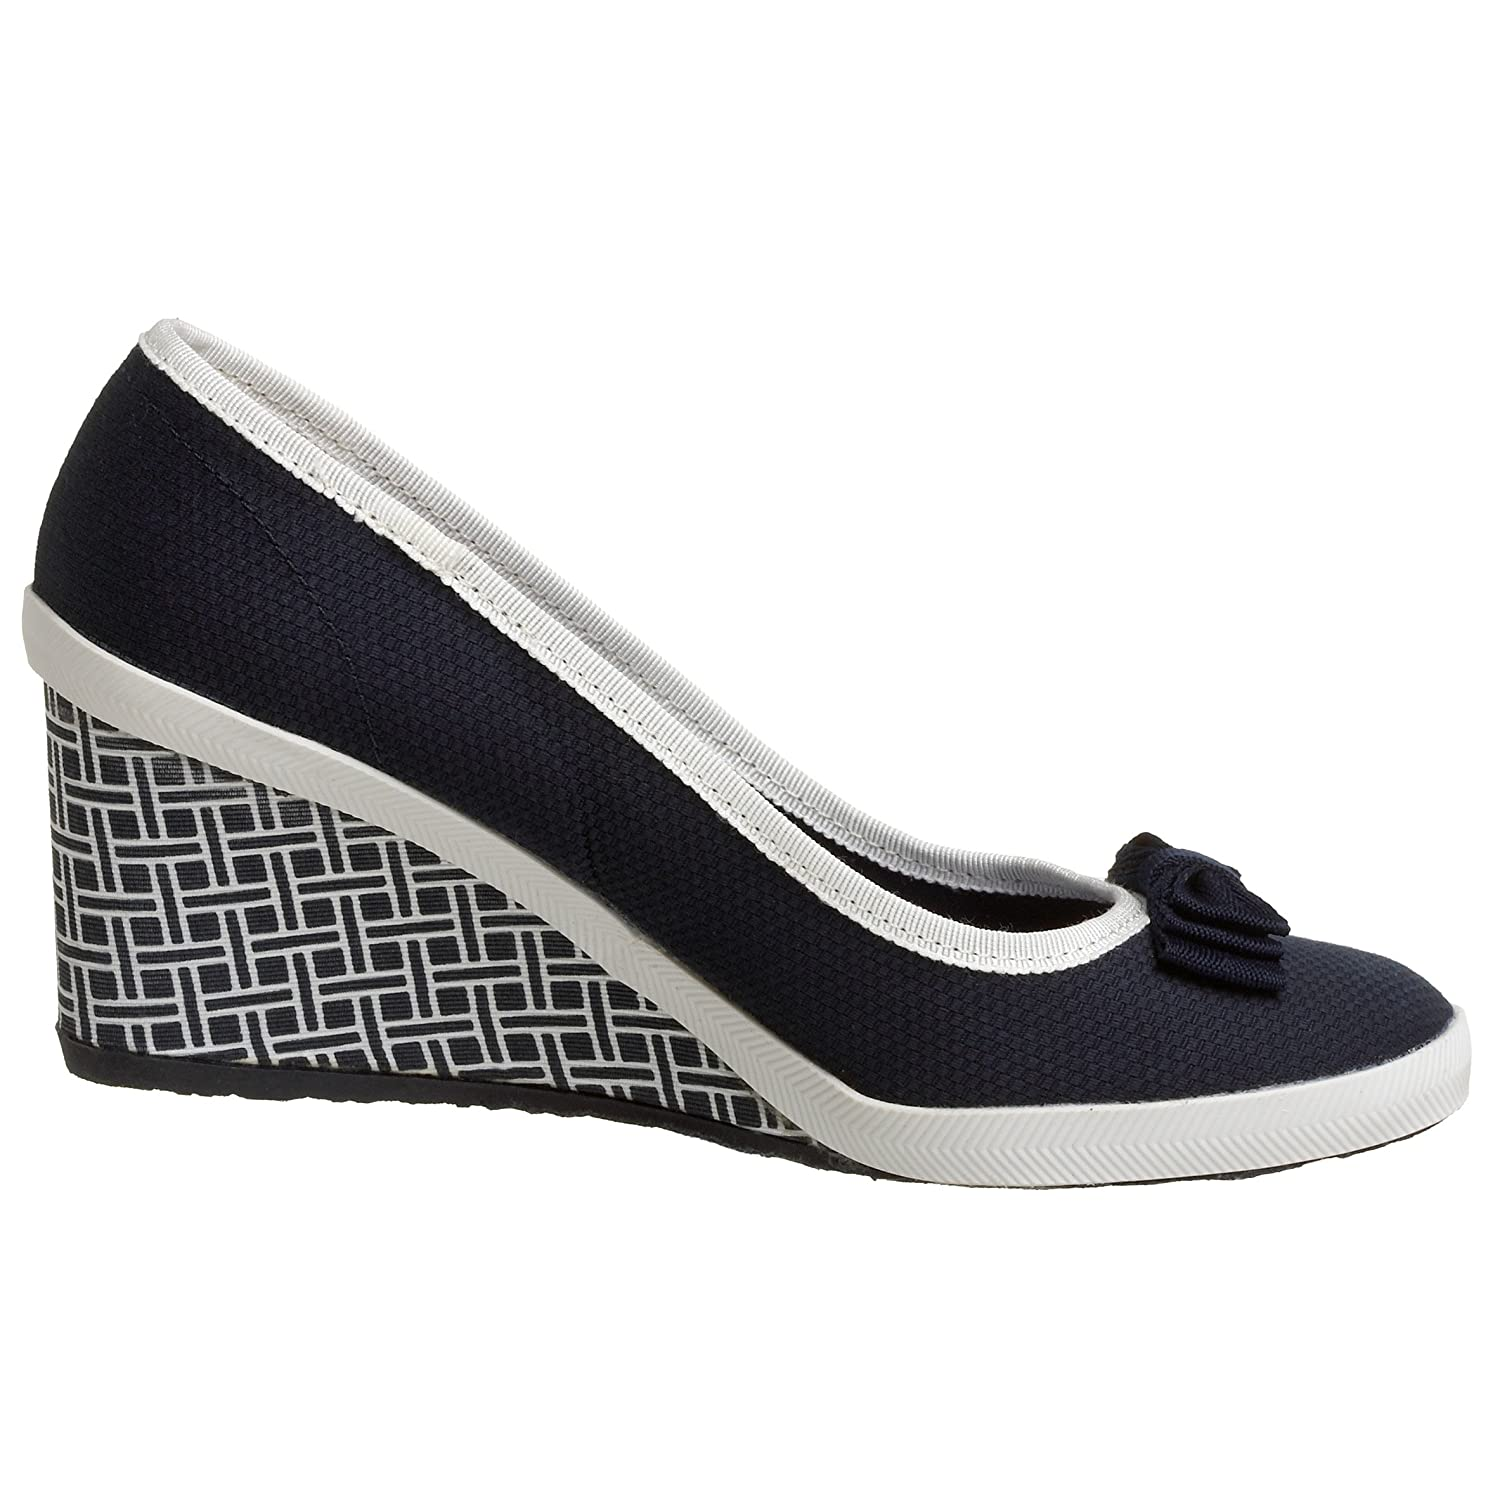 Keds Bliss Skimmer Wedge - Free Overnight Shipping & Return Shipping: Endless.com :  rubber retro heels keds